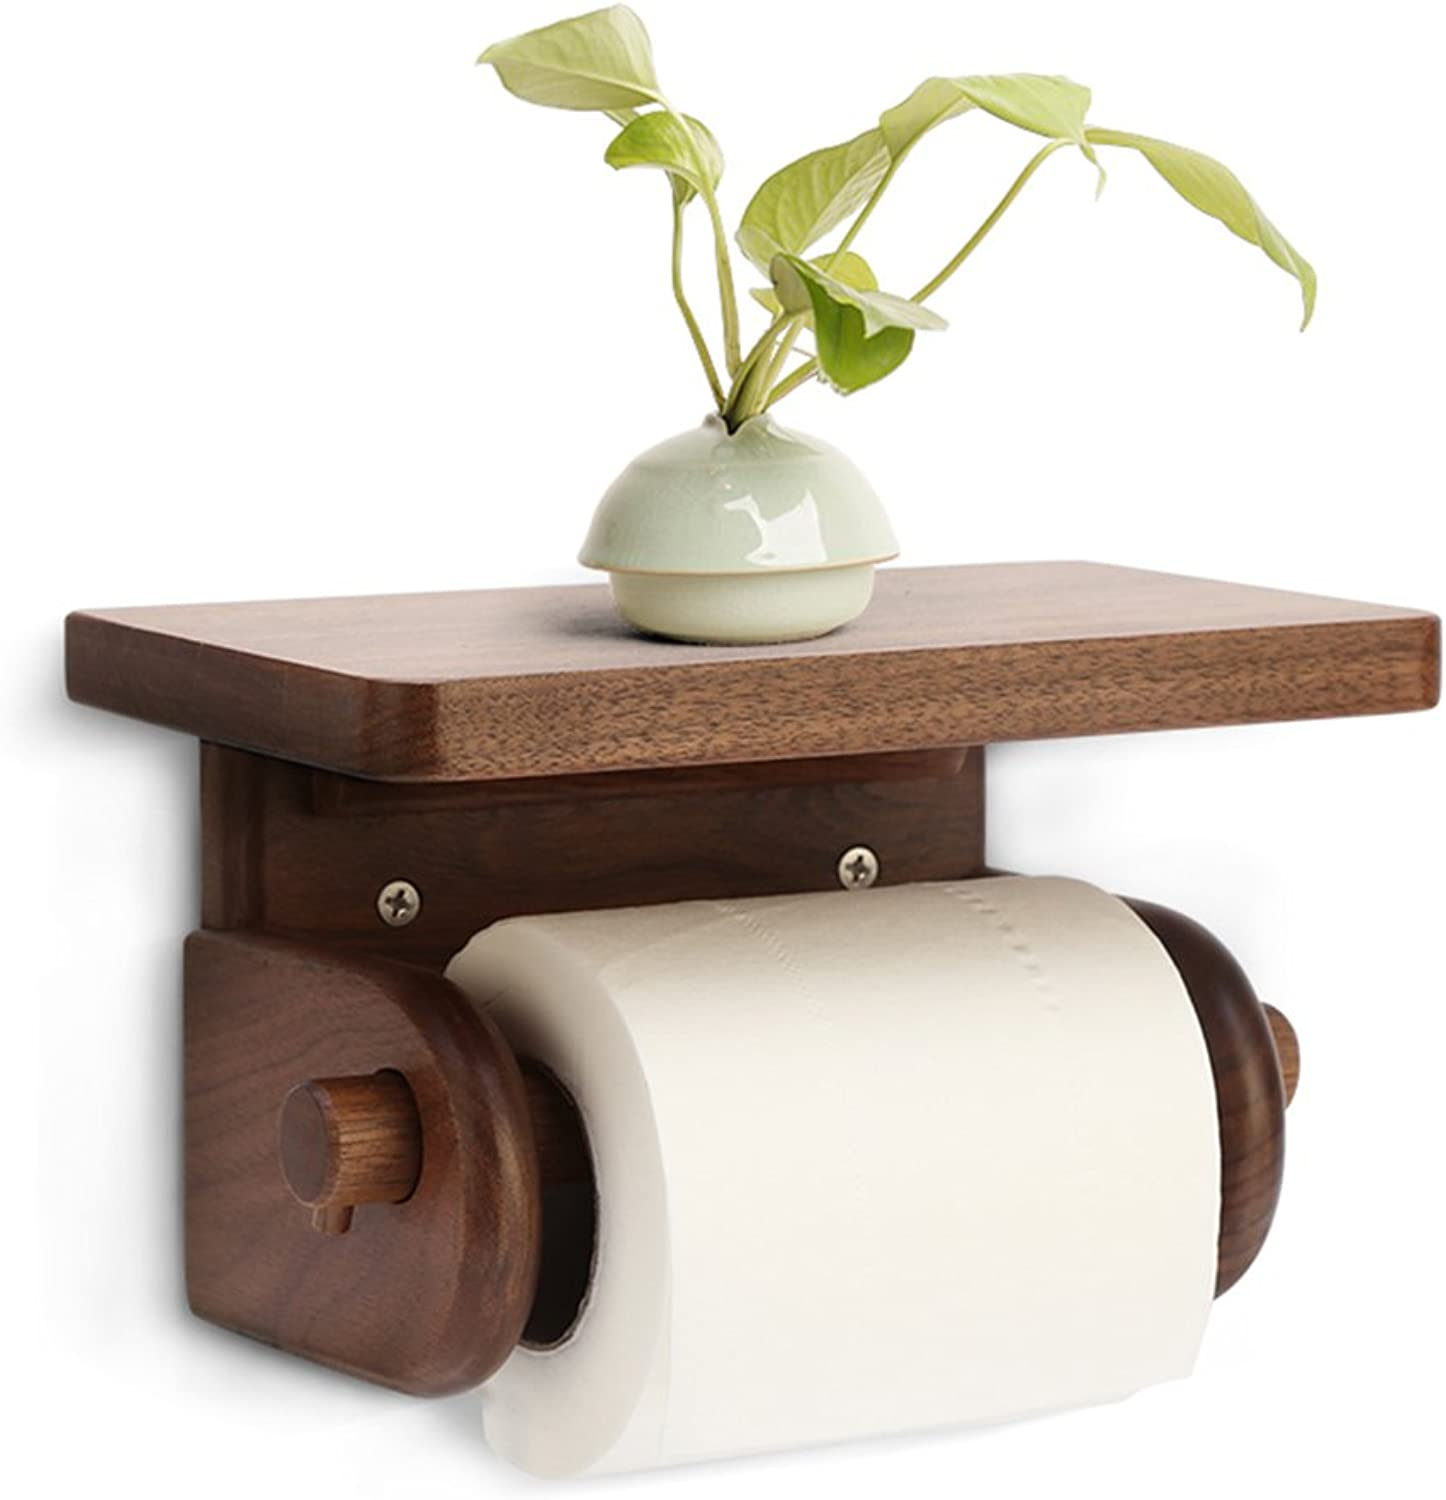 WENZHE Over Toilet Bathroom Toilet Roll Holder Storer Wall Mounted Tissue Box Wooden, 3 Models 19  12  11.5cm Storage Racks Unit (color   Walnut)